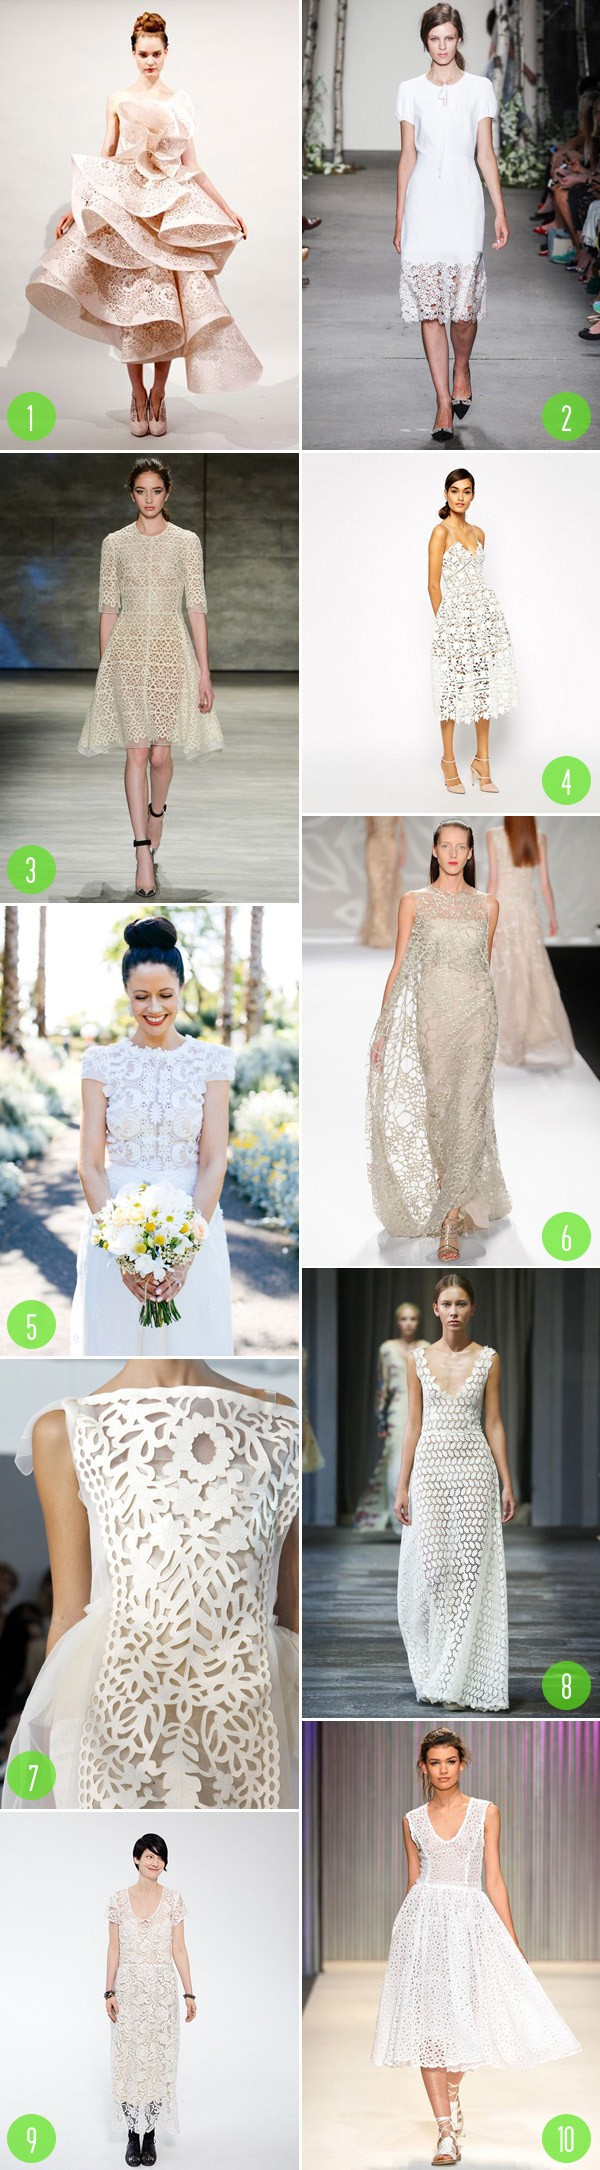 top 10: lacey dresses